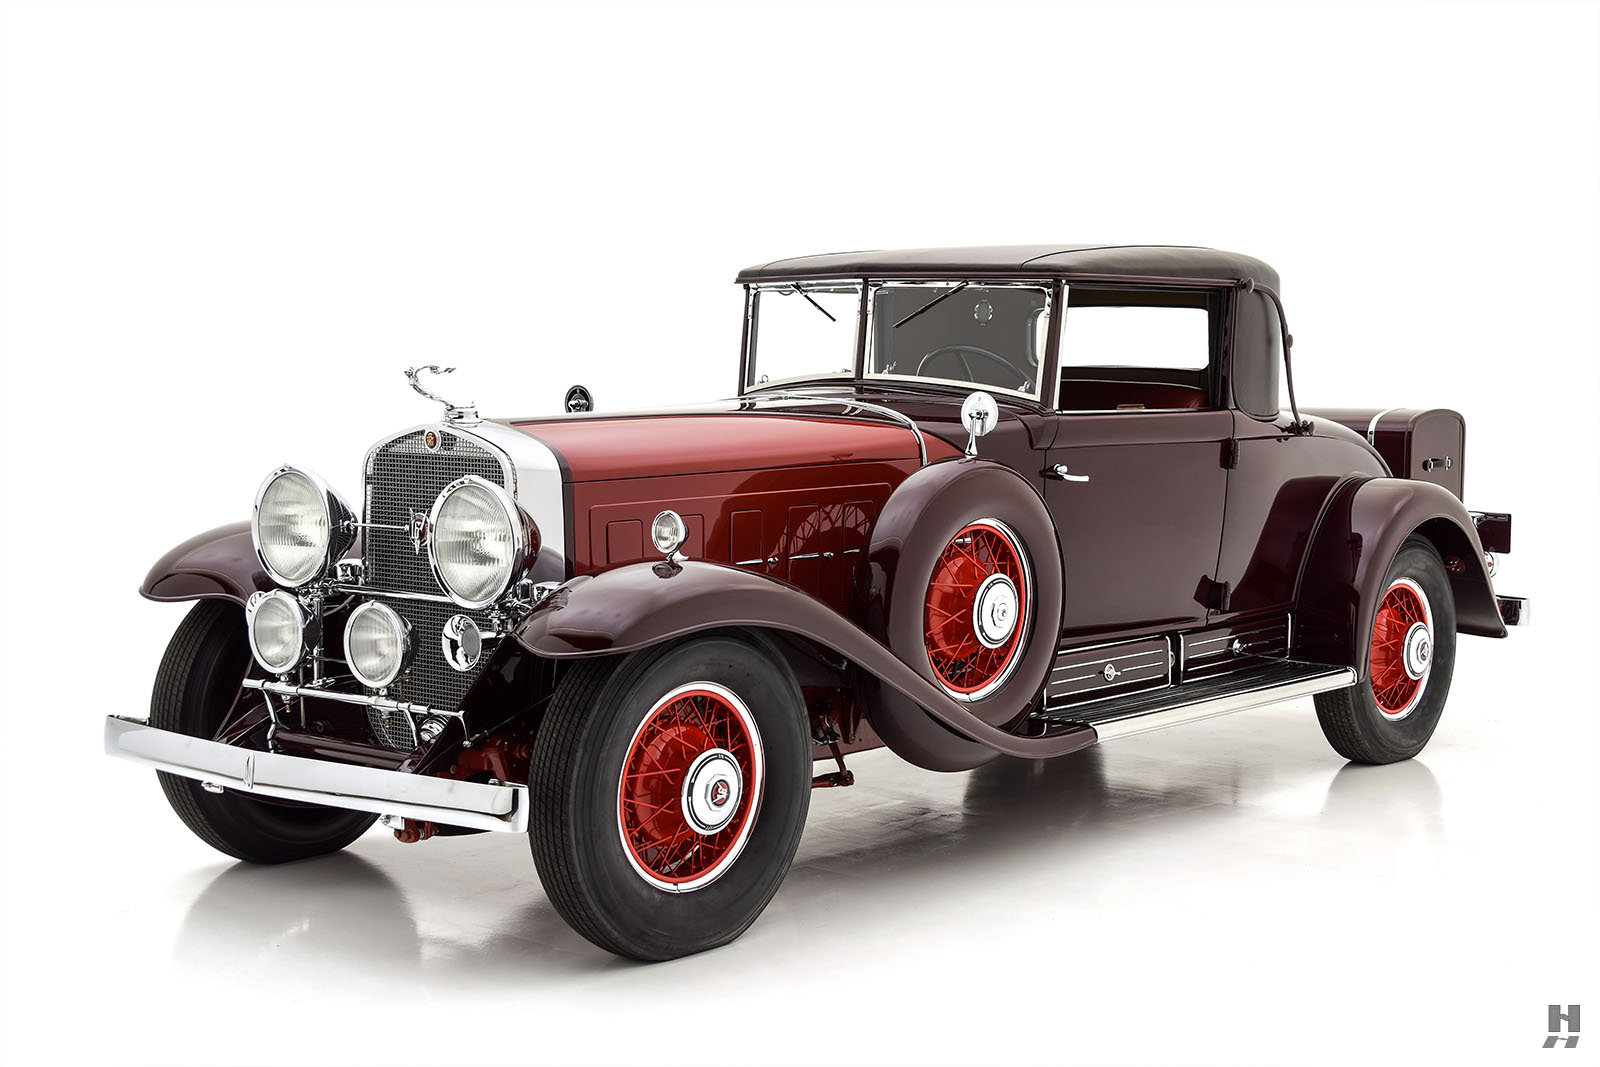 1930 CADILLAC SERIES 452 V-16 COUPE For Sale (picture 1 of 6)